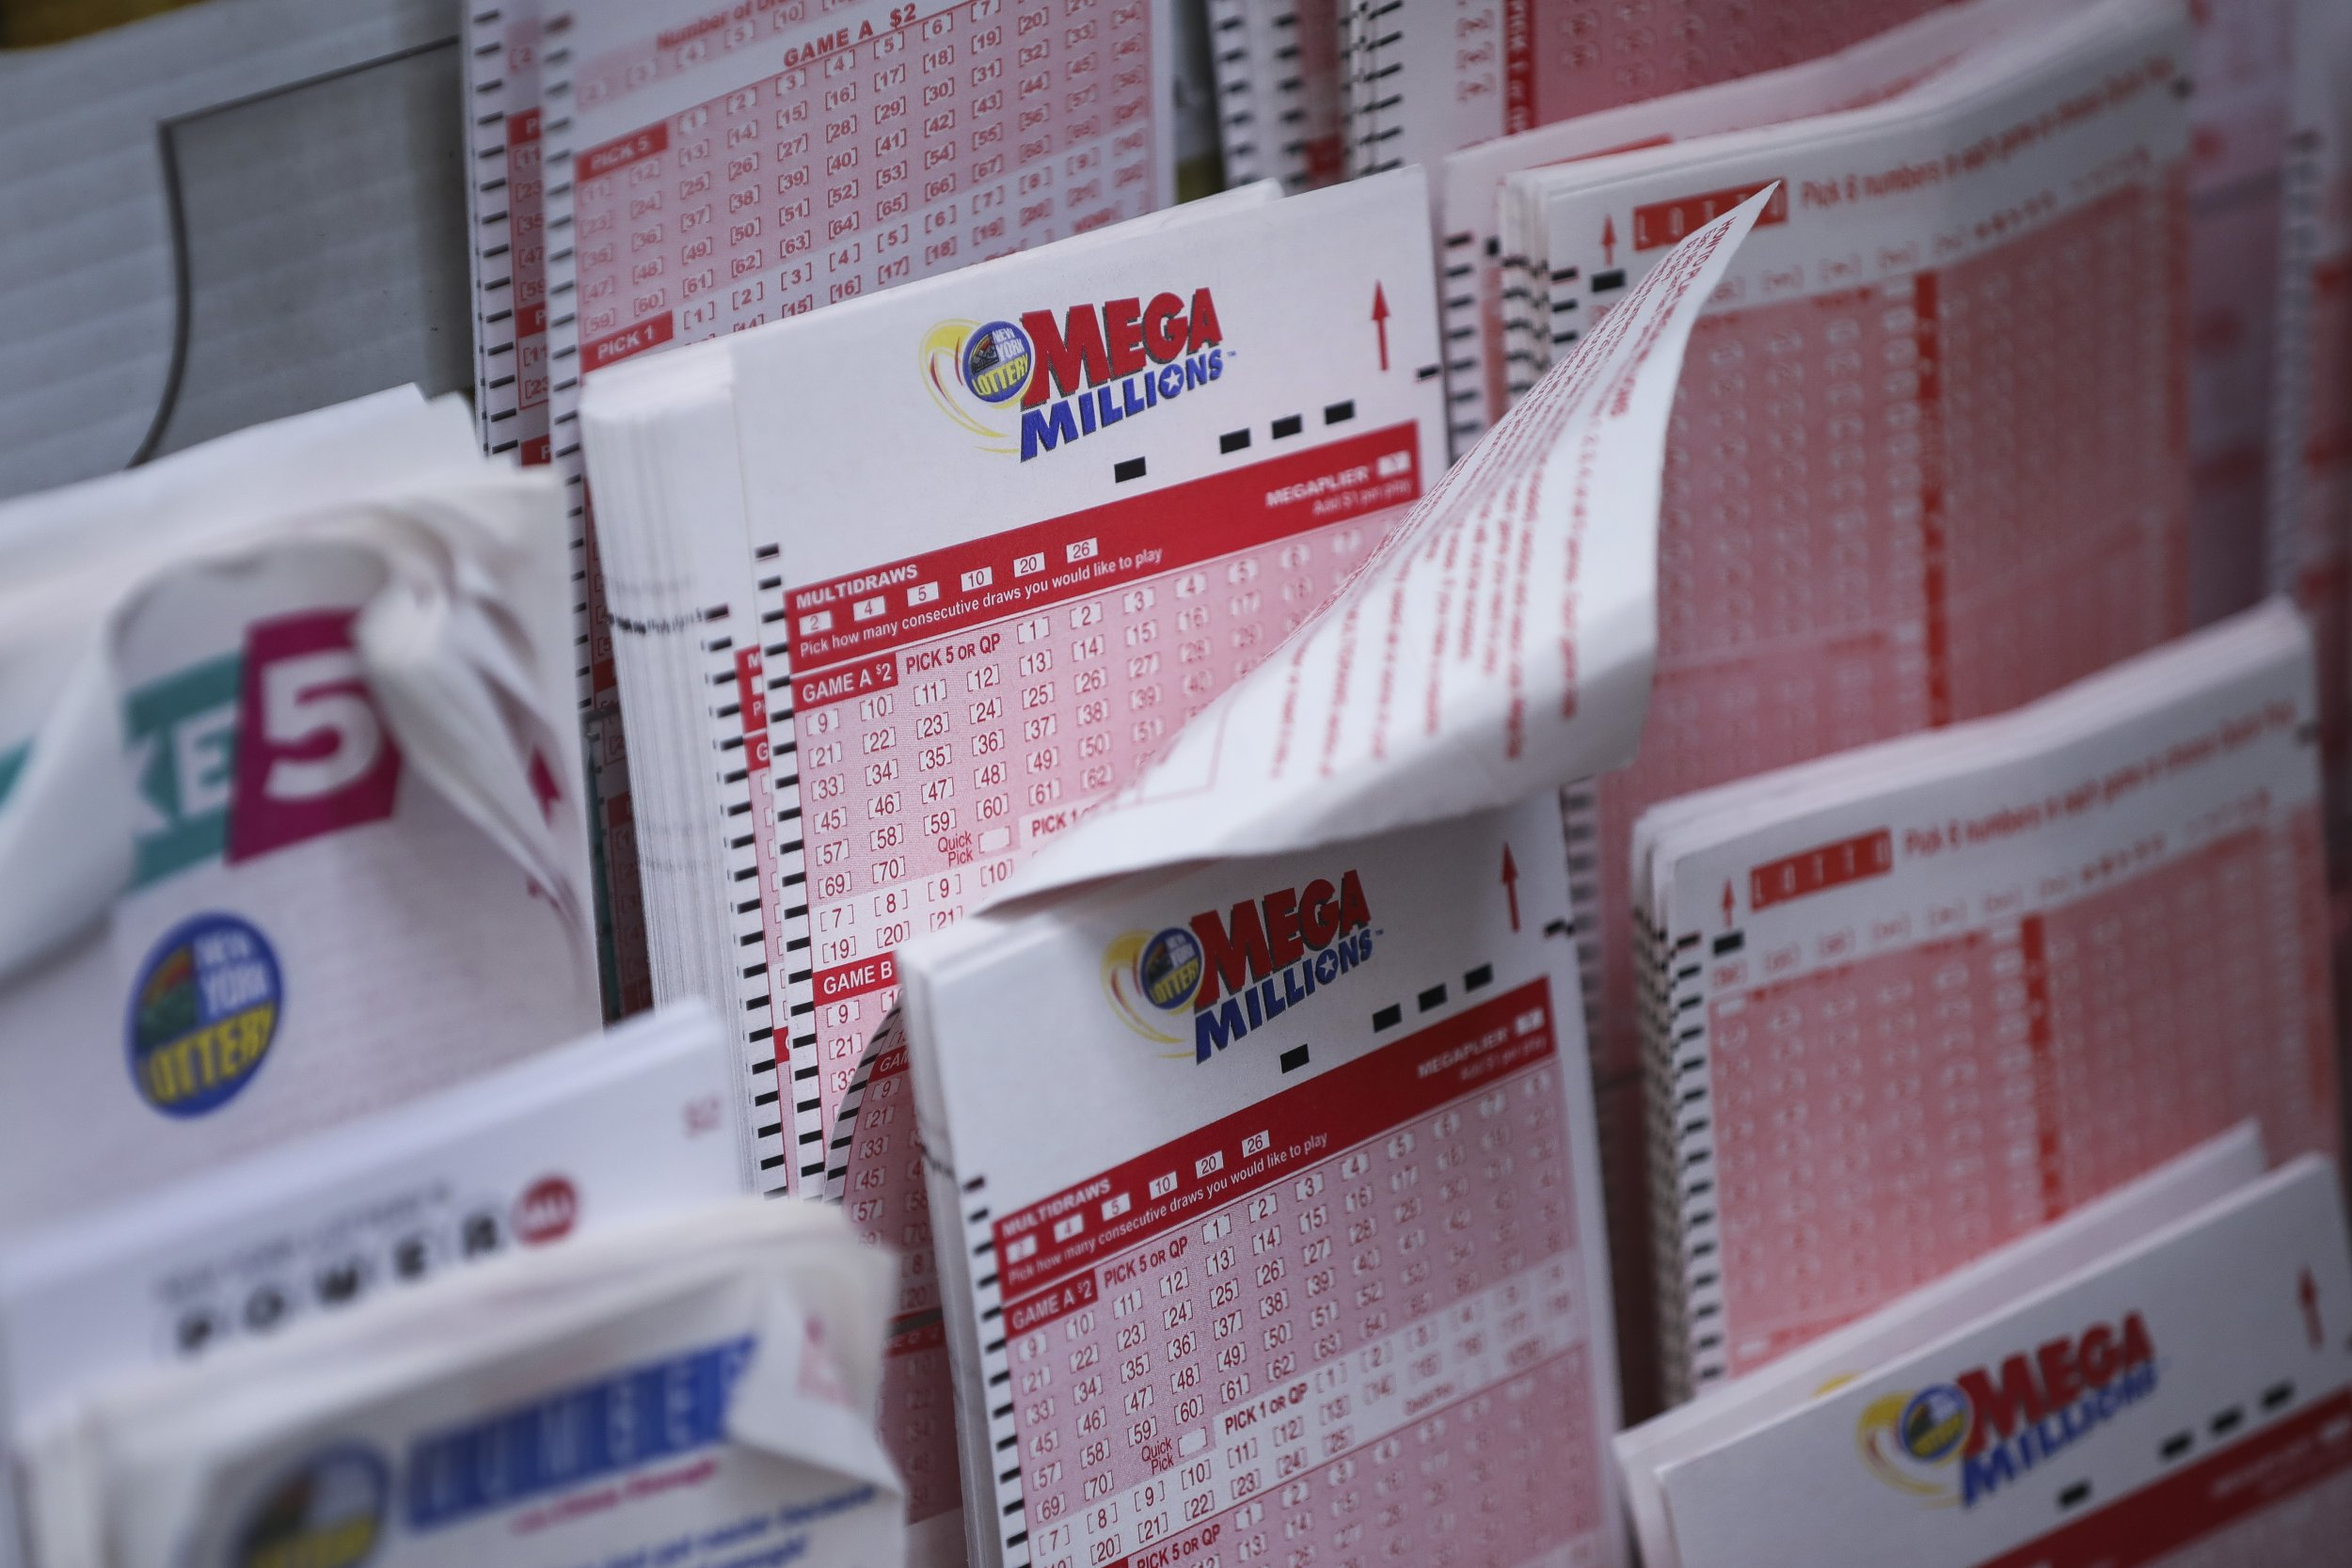 mega millions tickets lined up